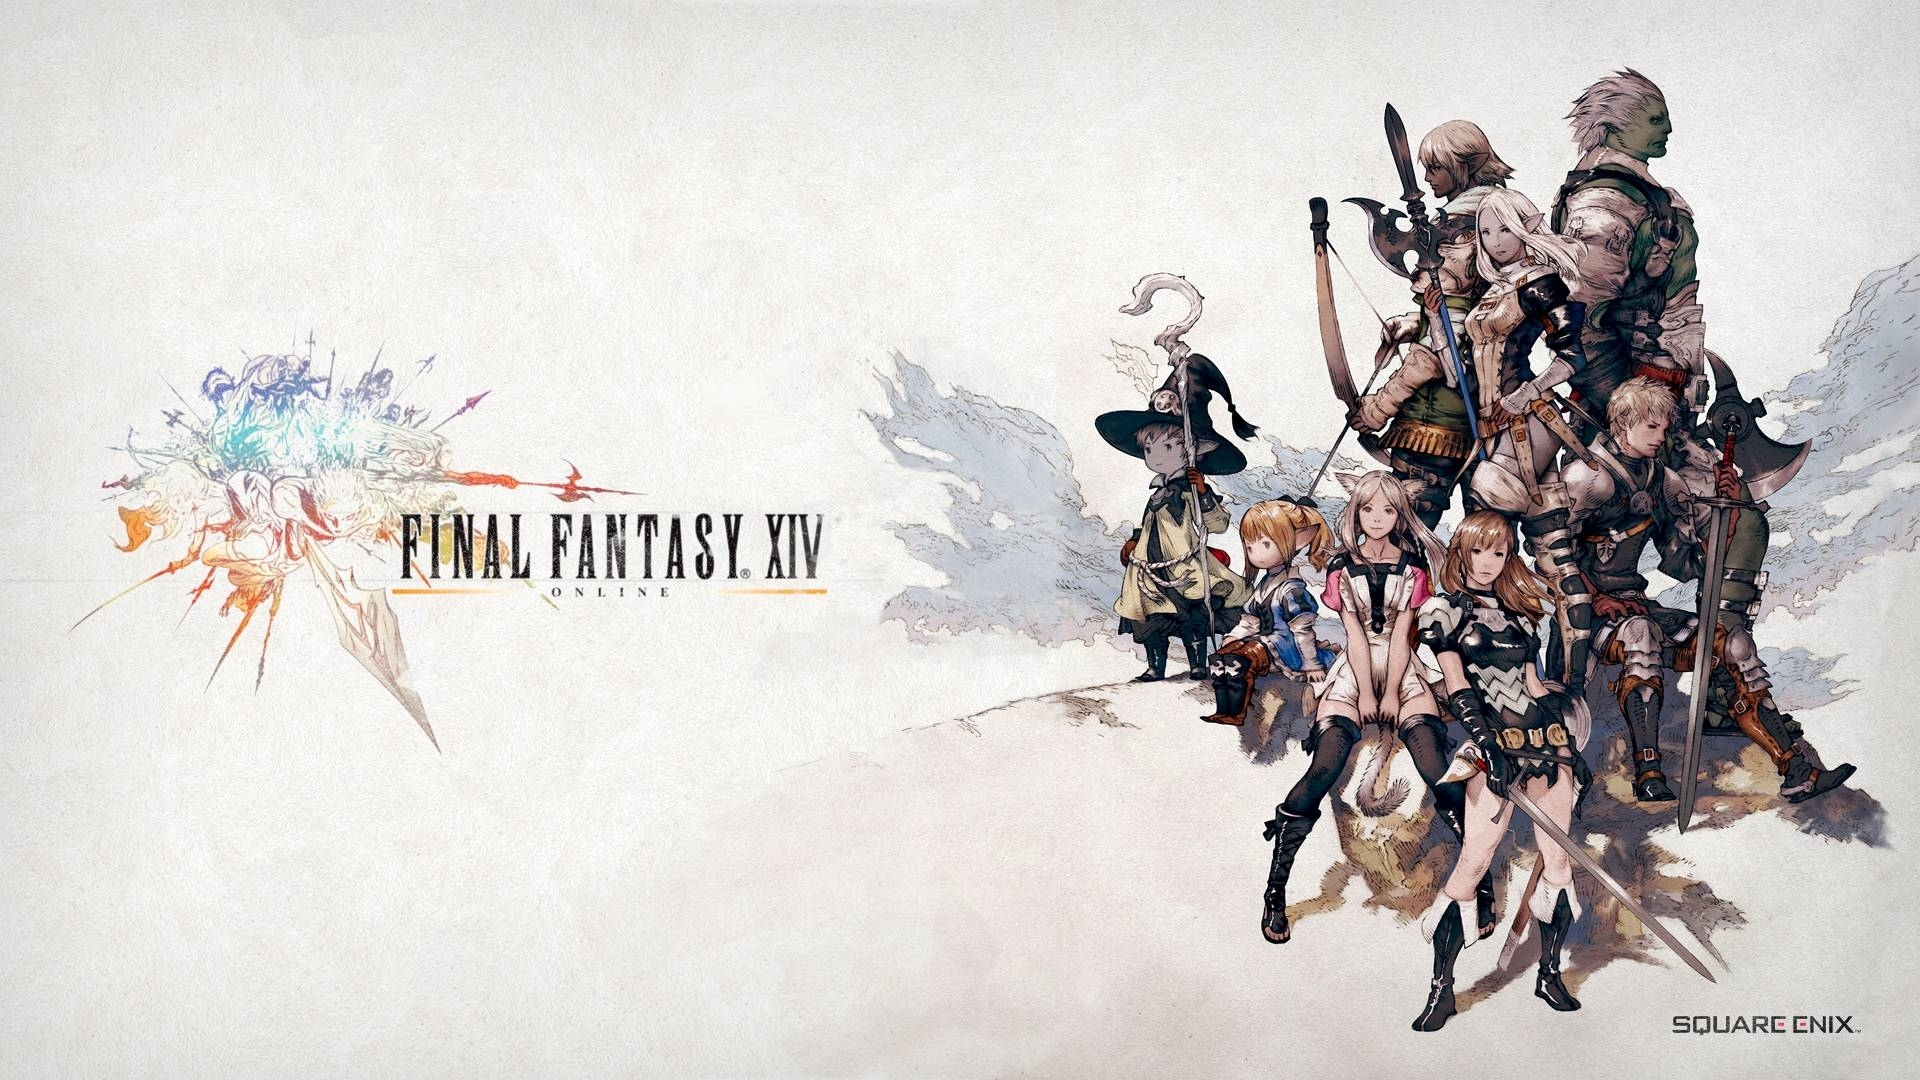 final fantasy xiv wallpapers - wallpaper cave